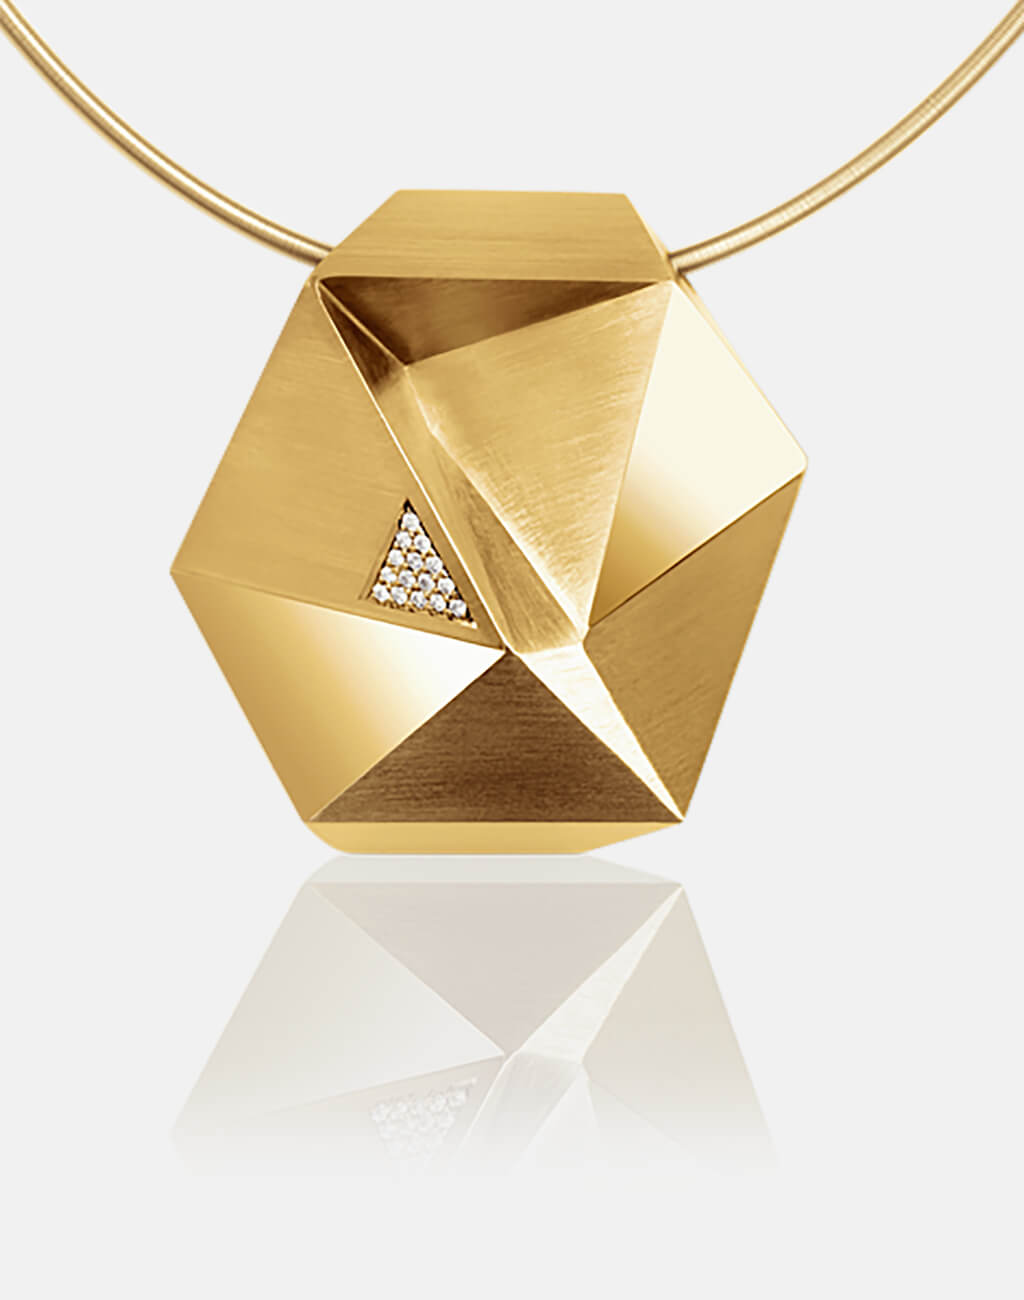 Tectone | Collier, Kette, Kettenanhänger - 750 Gelbgold, Diamanten-Brillanten | necklace, pendant - 18kt yellow gold, diamonds | SYNO-Schmuck.com